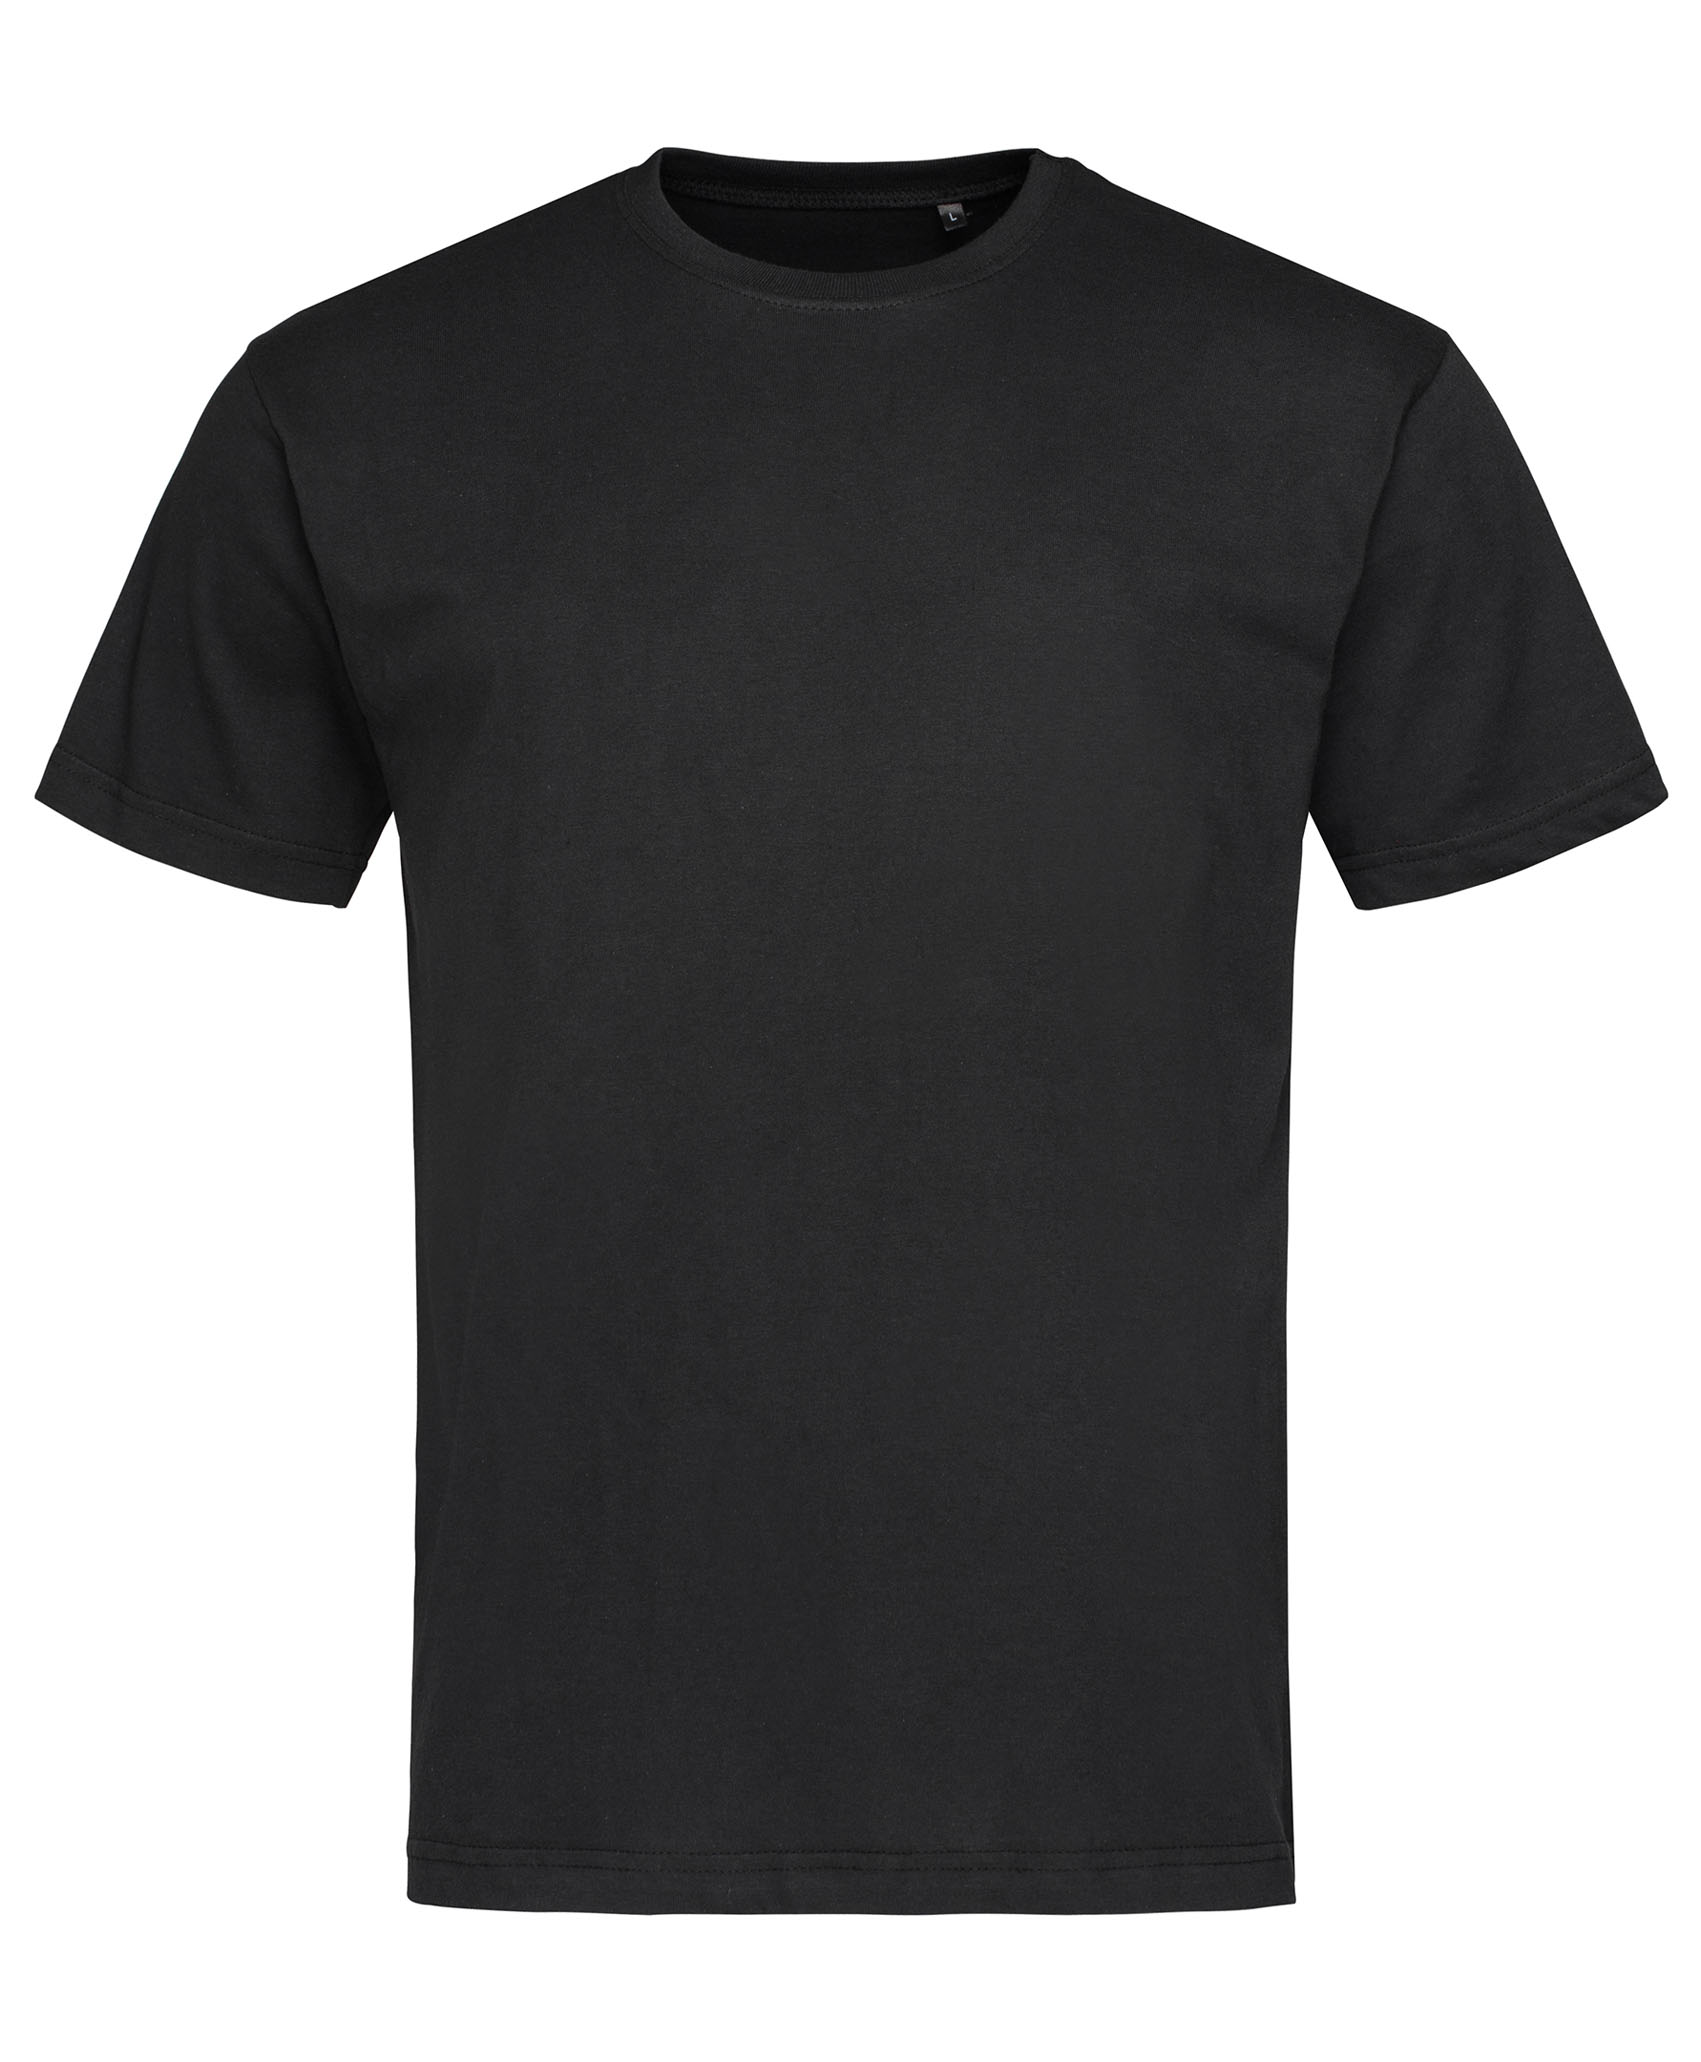 Stedman T-shirt NANO for him